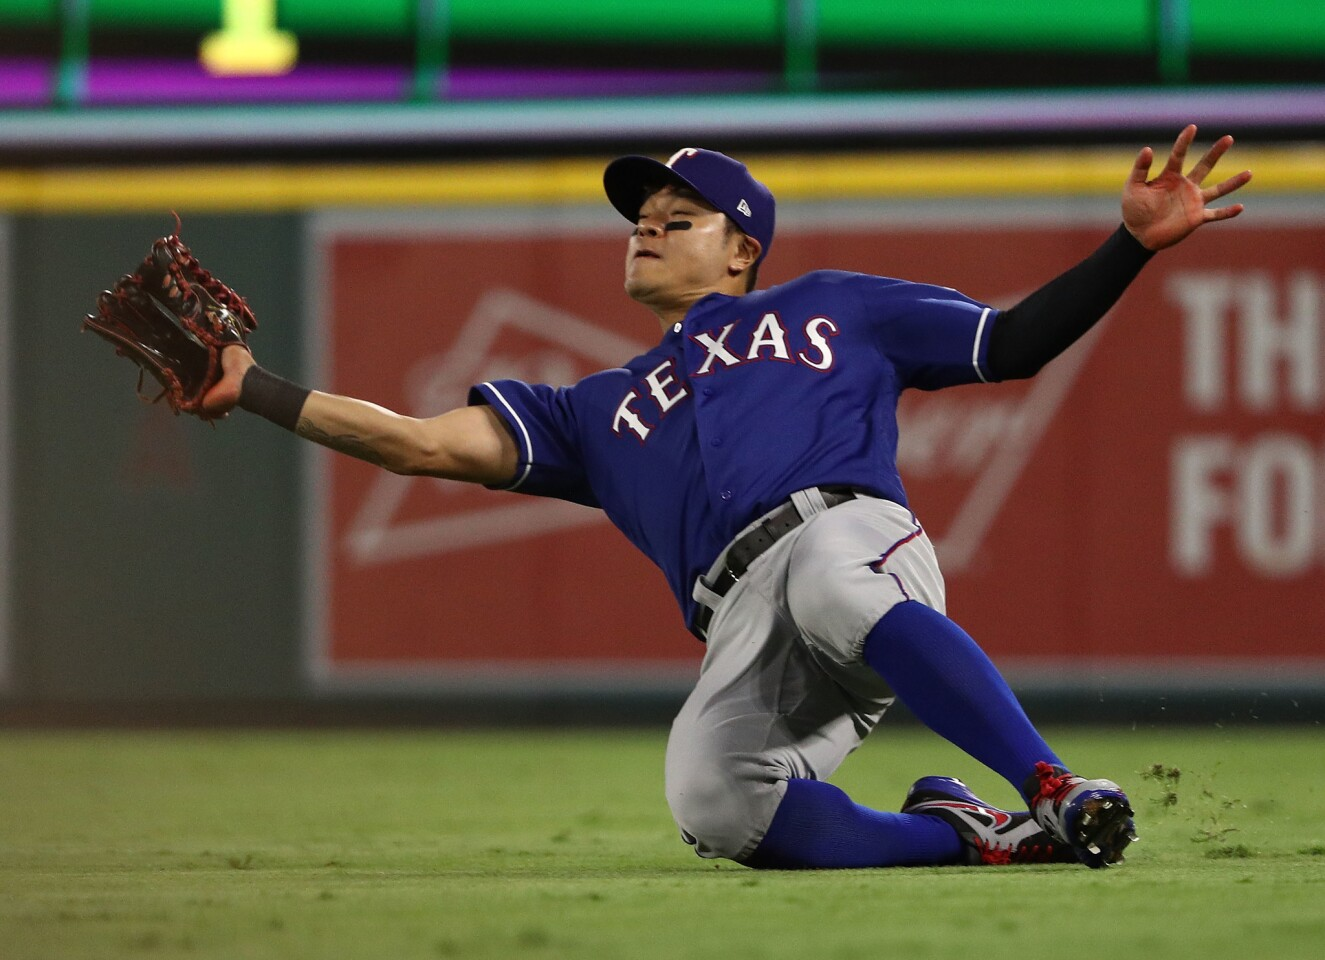 ANAHEIM, CA - SEPTEMBER 10: Shin-Soo Choo #17 of the Texas Rangers makes a sliding catch on a flyball to right field during the fourth inning of the MLB game at Angel Stadium on September 10, 2018 in Anaheim, California. (Photo by Victor Decolongon/Getty Images) ** OUTS - ELSENT, FPG, CM - OUTS * NM, PH, VA if sourced by CT, LA or MoD **